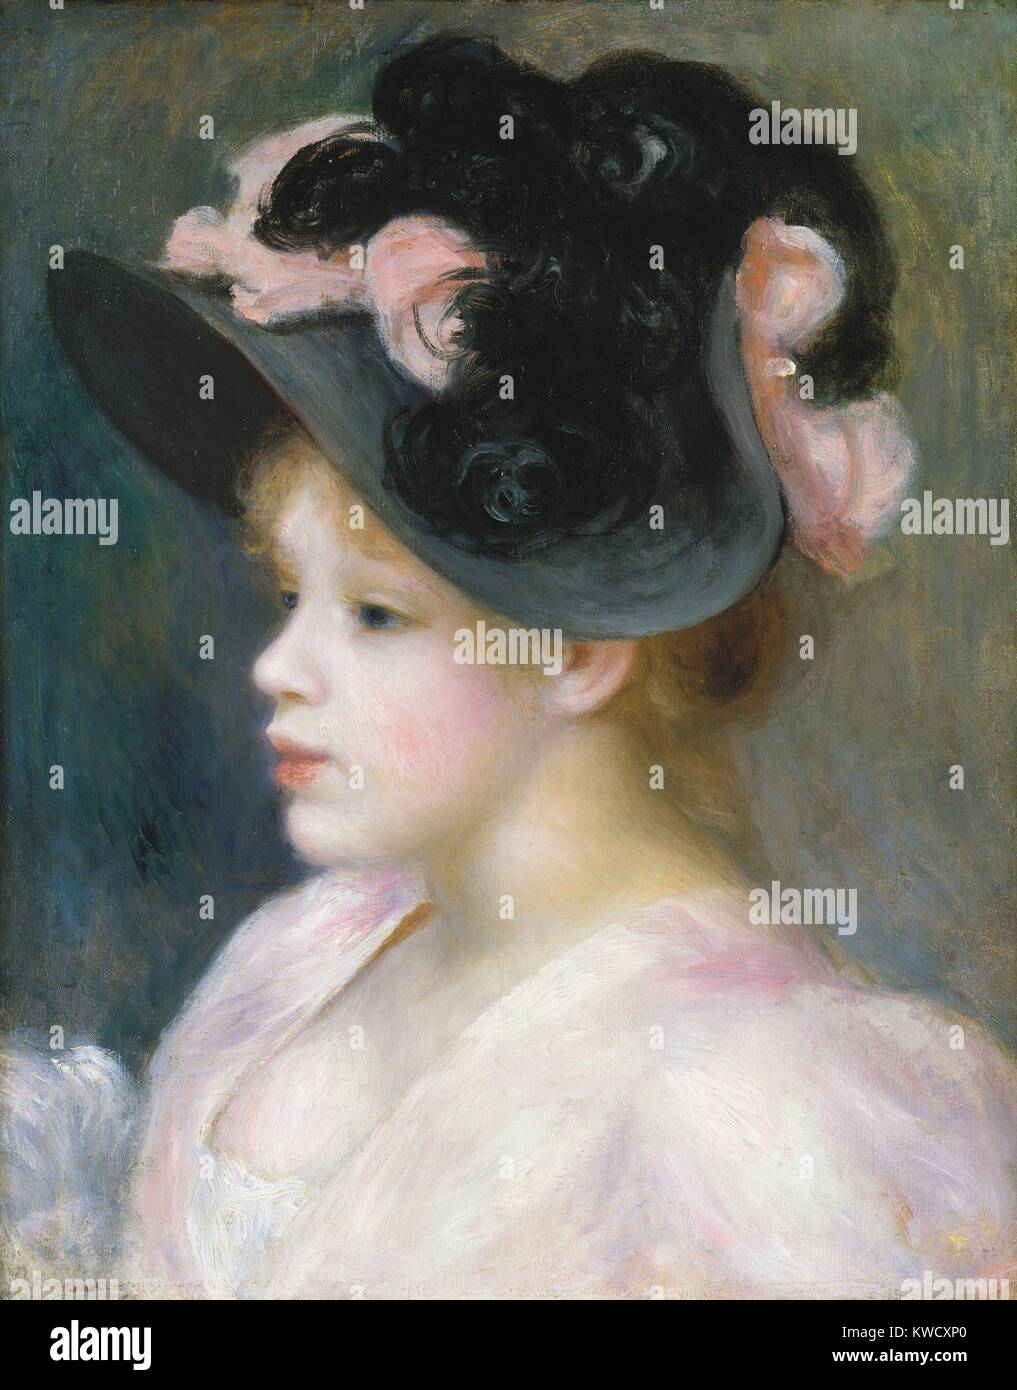 Young Girl in a Pink-and-Black Hat, by Auguste Renoir, 1891, French impressionist oil painting. Renoir painted many - Stock Image